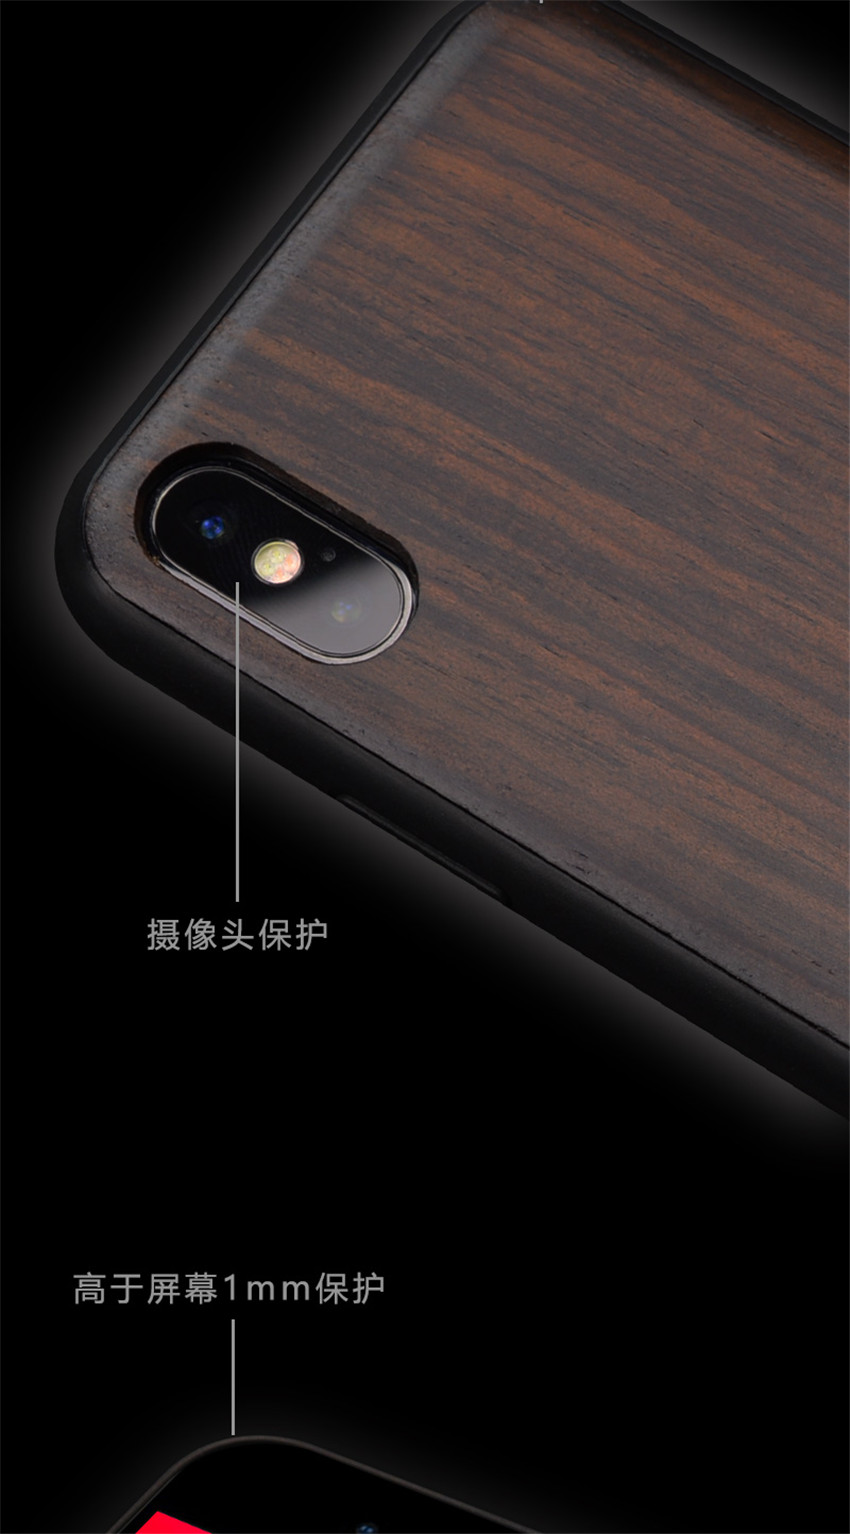 2018 New For iPhone XS Max Case Black Ebony Wood Cover For iPhone XS Carved TPU Bumper Wooden Case For iPhone X XR (4)